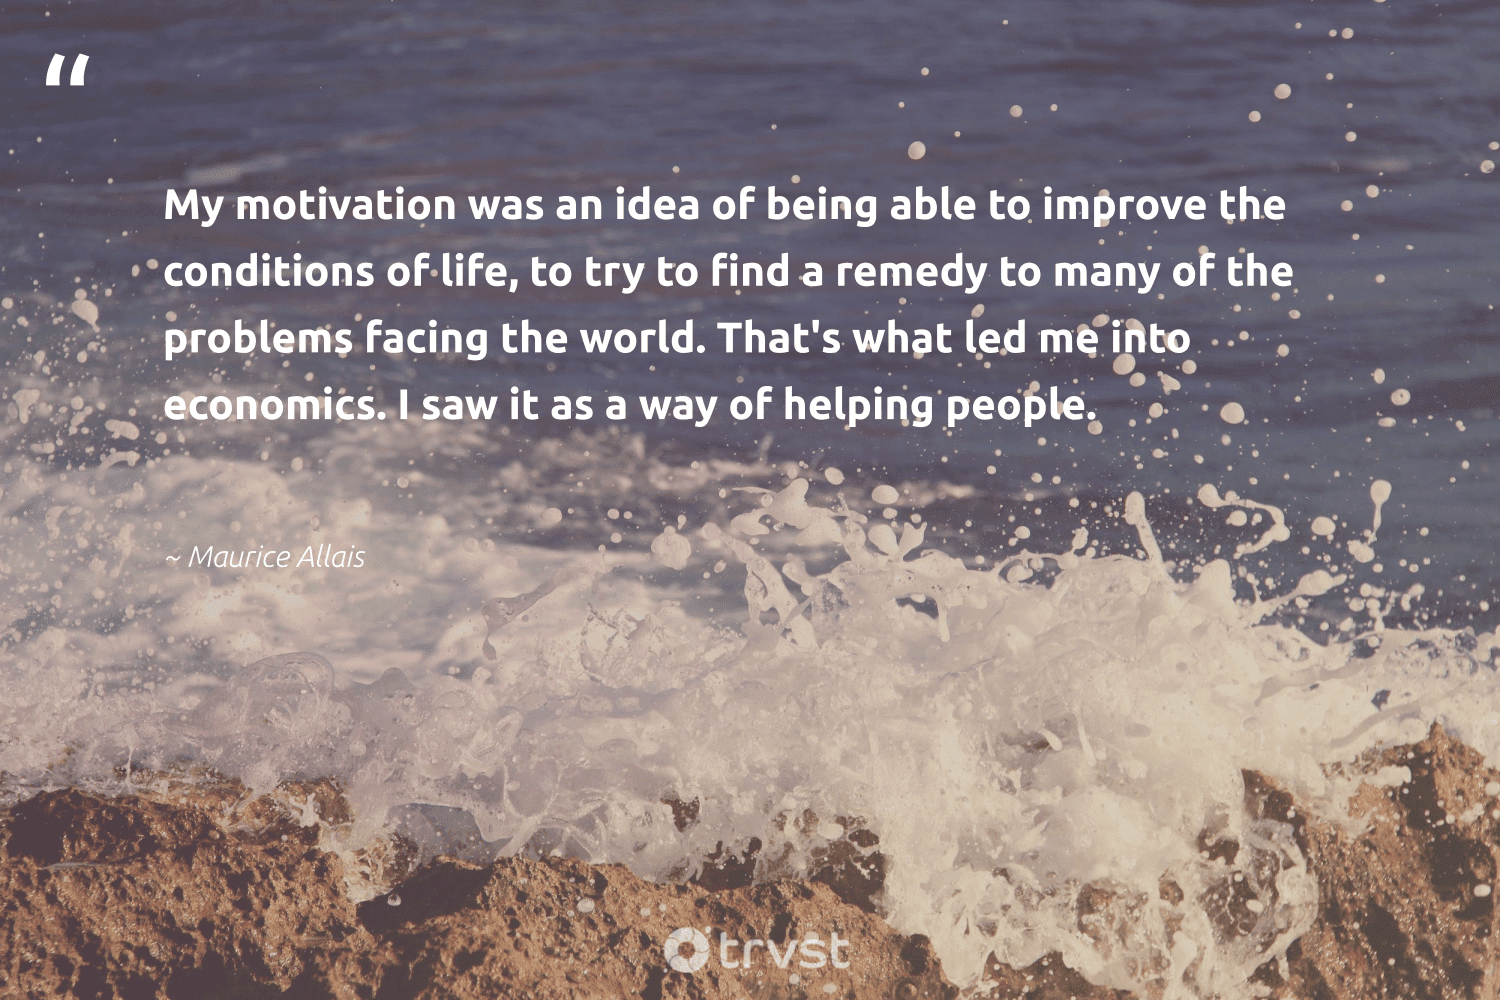 """""""My motivation was an idea of being able to improve the conditions of life, to try to find a remedy to many of the problems facing the world. That's what led me into economics. I saw it as a way of helping people.""""  - Maurice Allais #trvst #quotes #economics #motivation #goals #softskills #begreat #changetheworld #mindful #nevergiveup #changemakers #dotherightthing"""